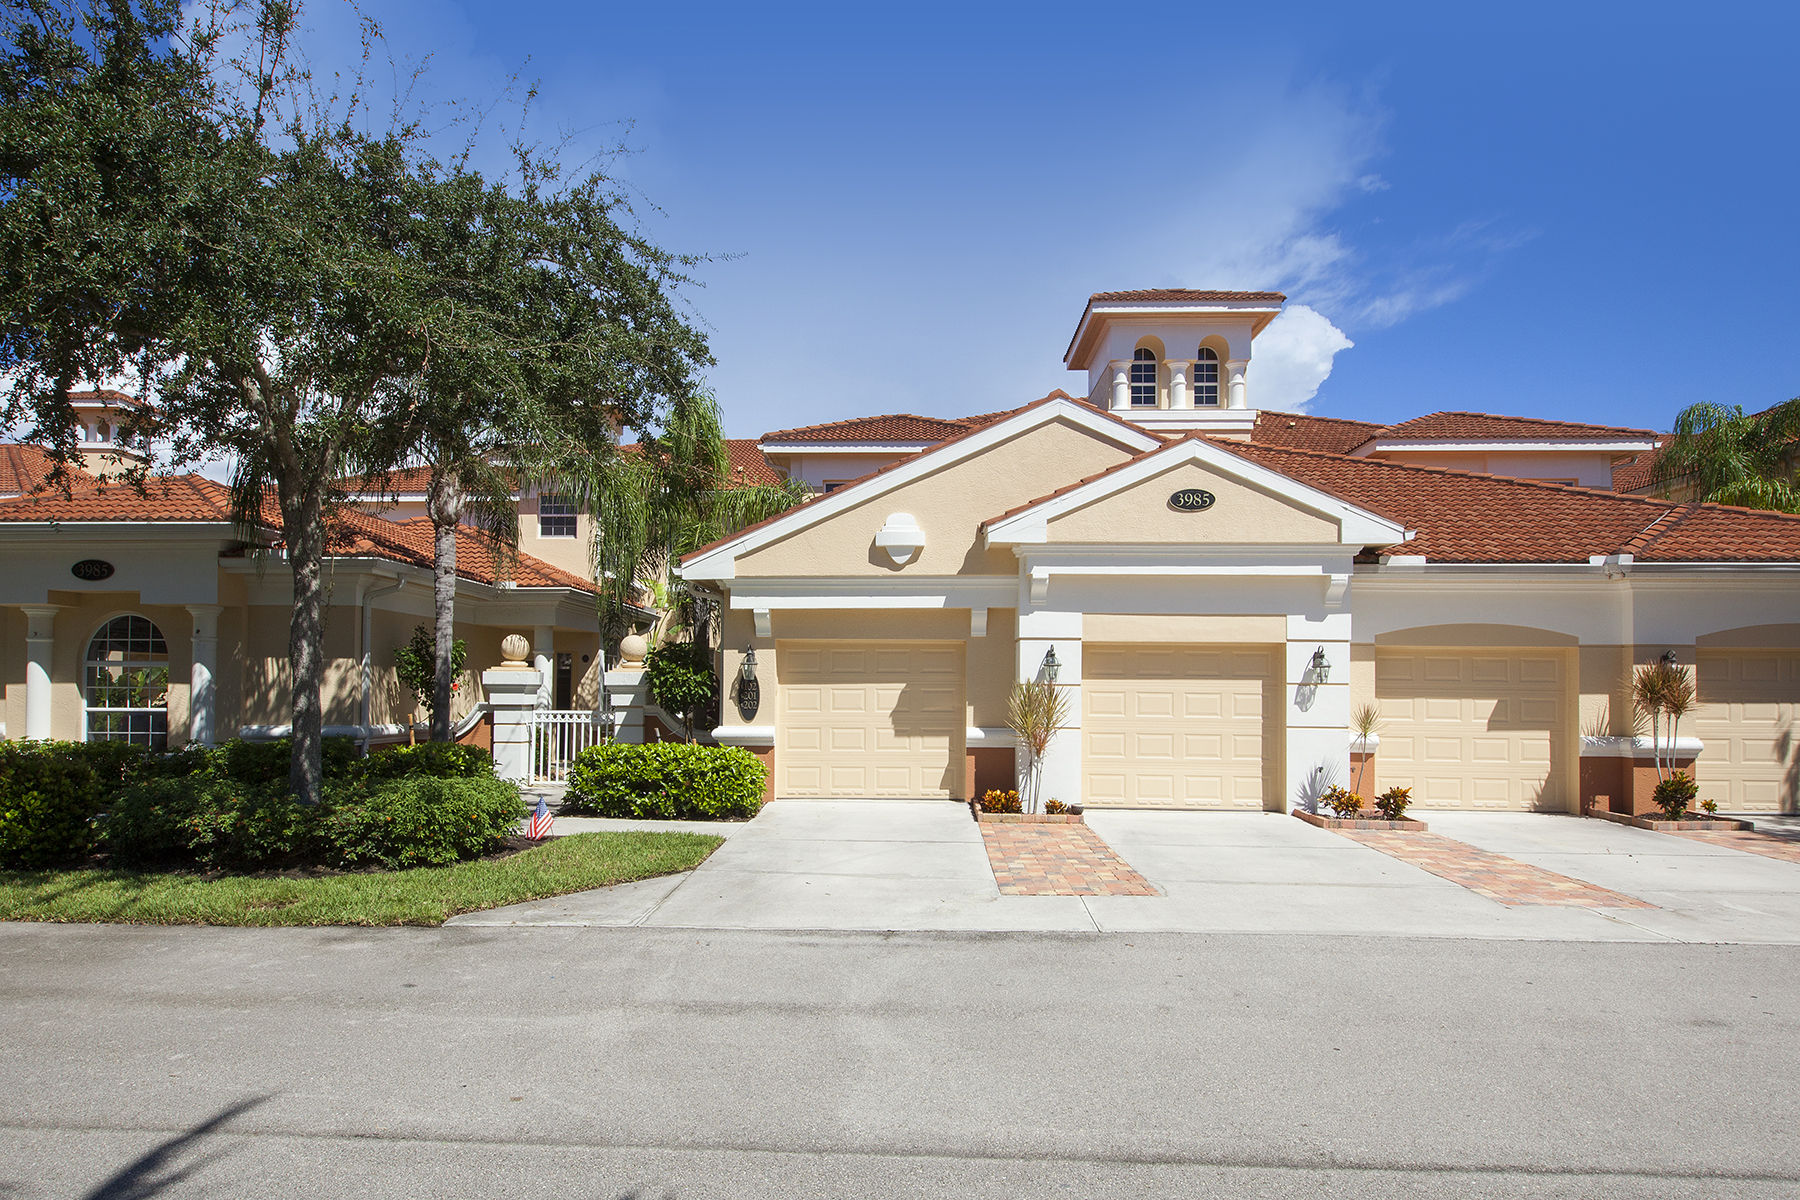 Appartement en copropriété pour l Vente à FIDDLER'S CREEK - DEER CROSSING 3985 Deer Crossing Ct 201 Naples, Florida, 34114 États-Unis